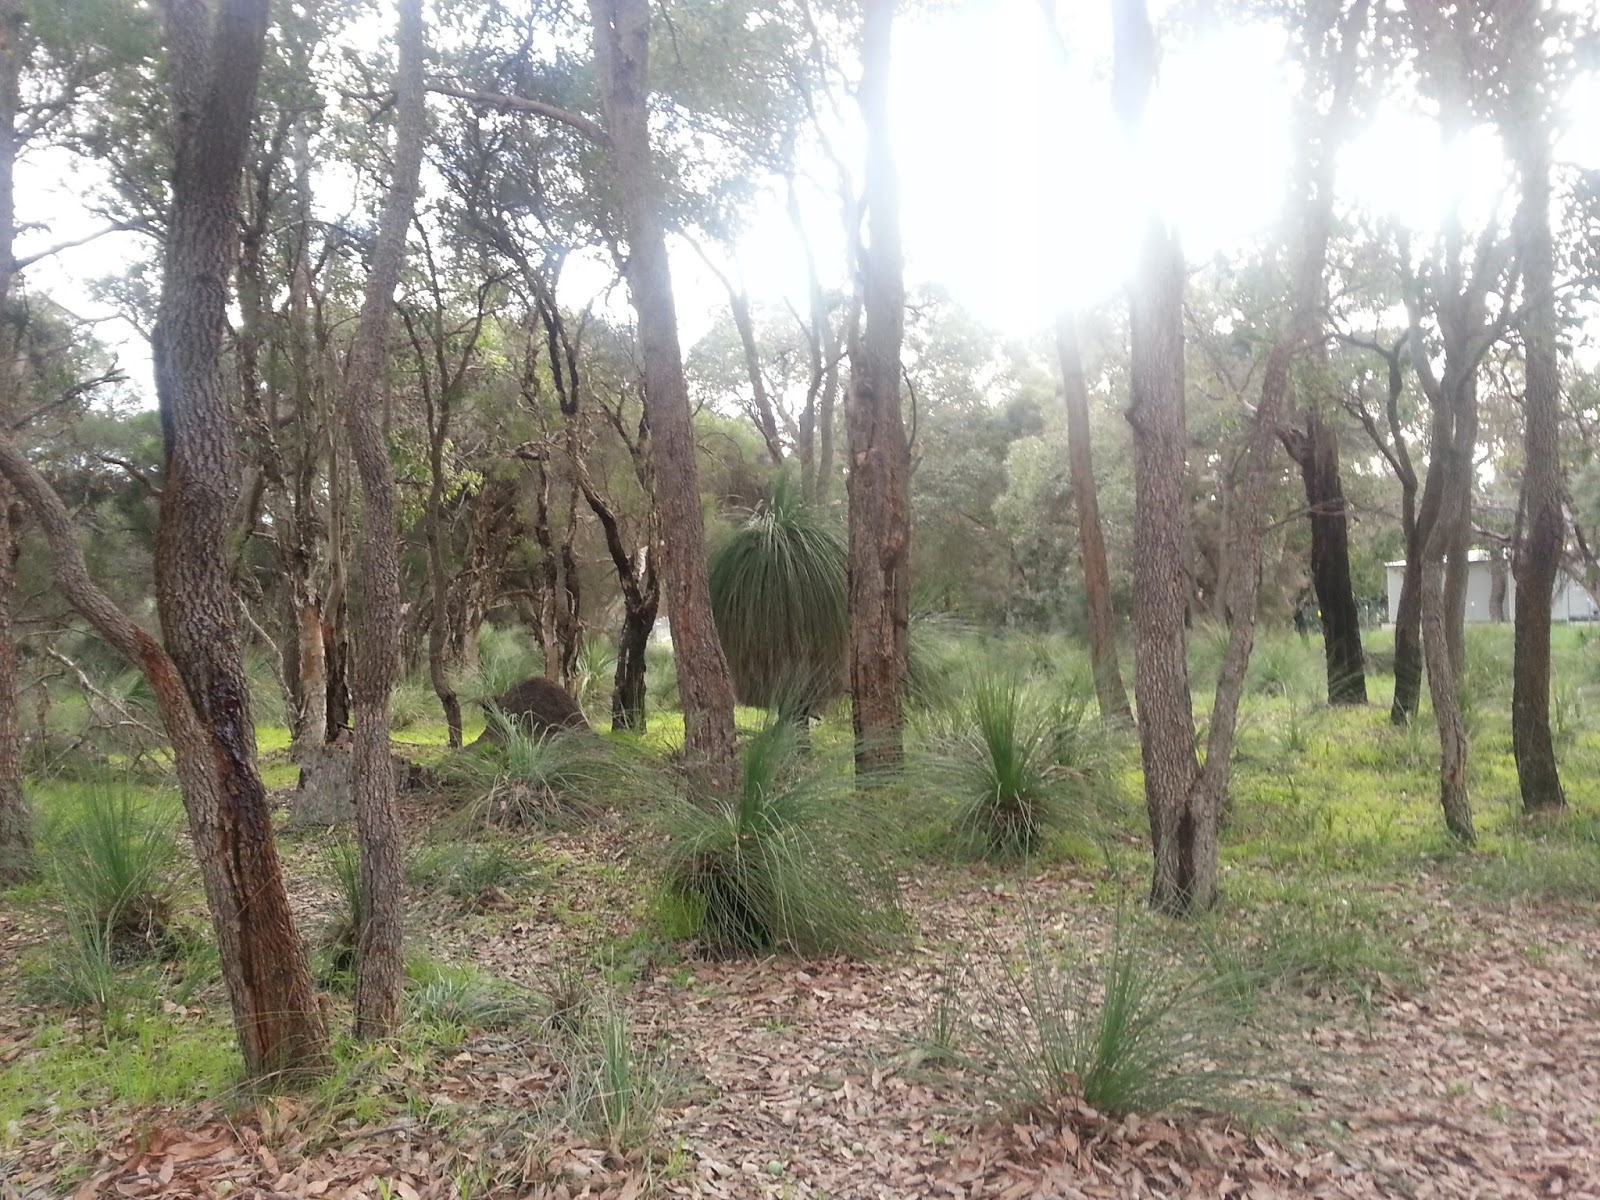 how to go to caversham wildlife park from perth city